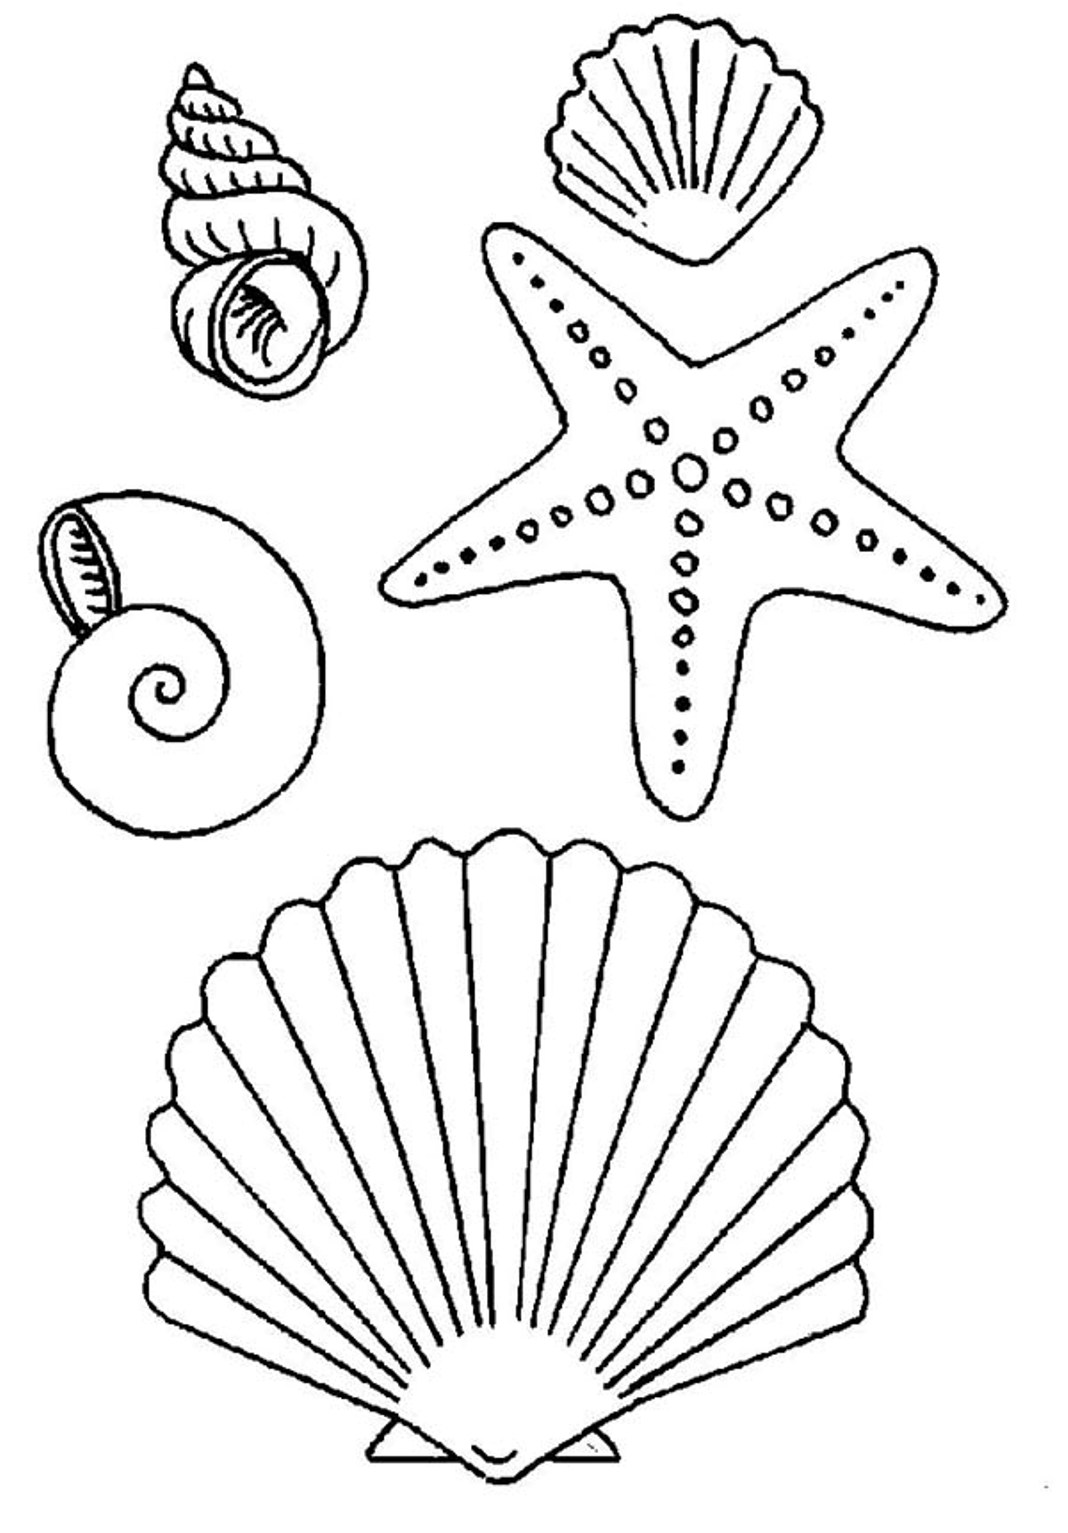 starfish to color printable starfish coloring pages for kids cool2bkids starfish to color